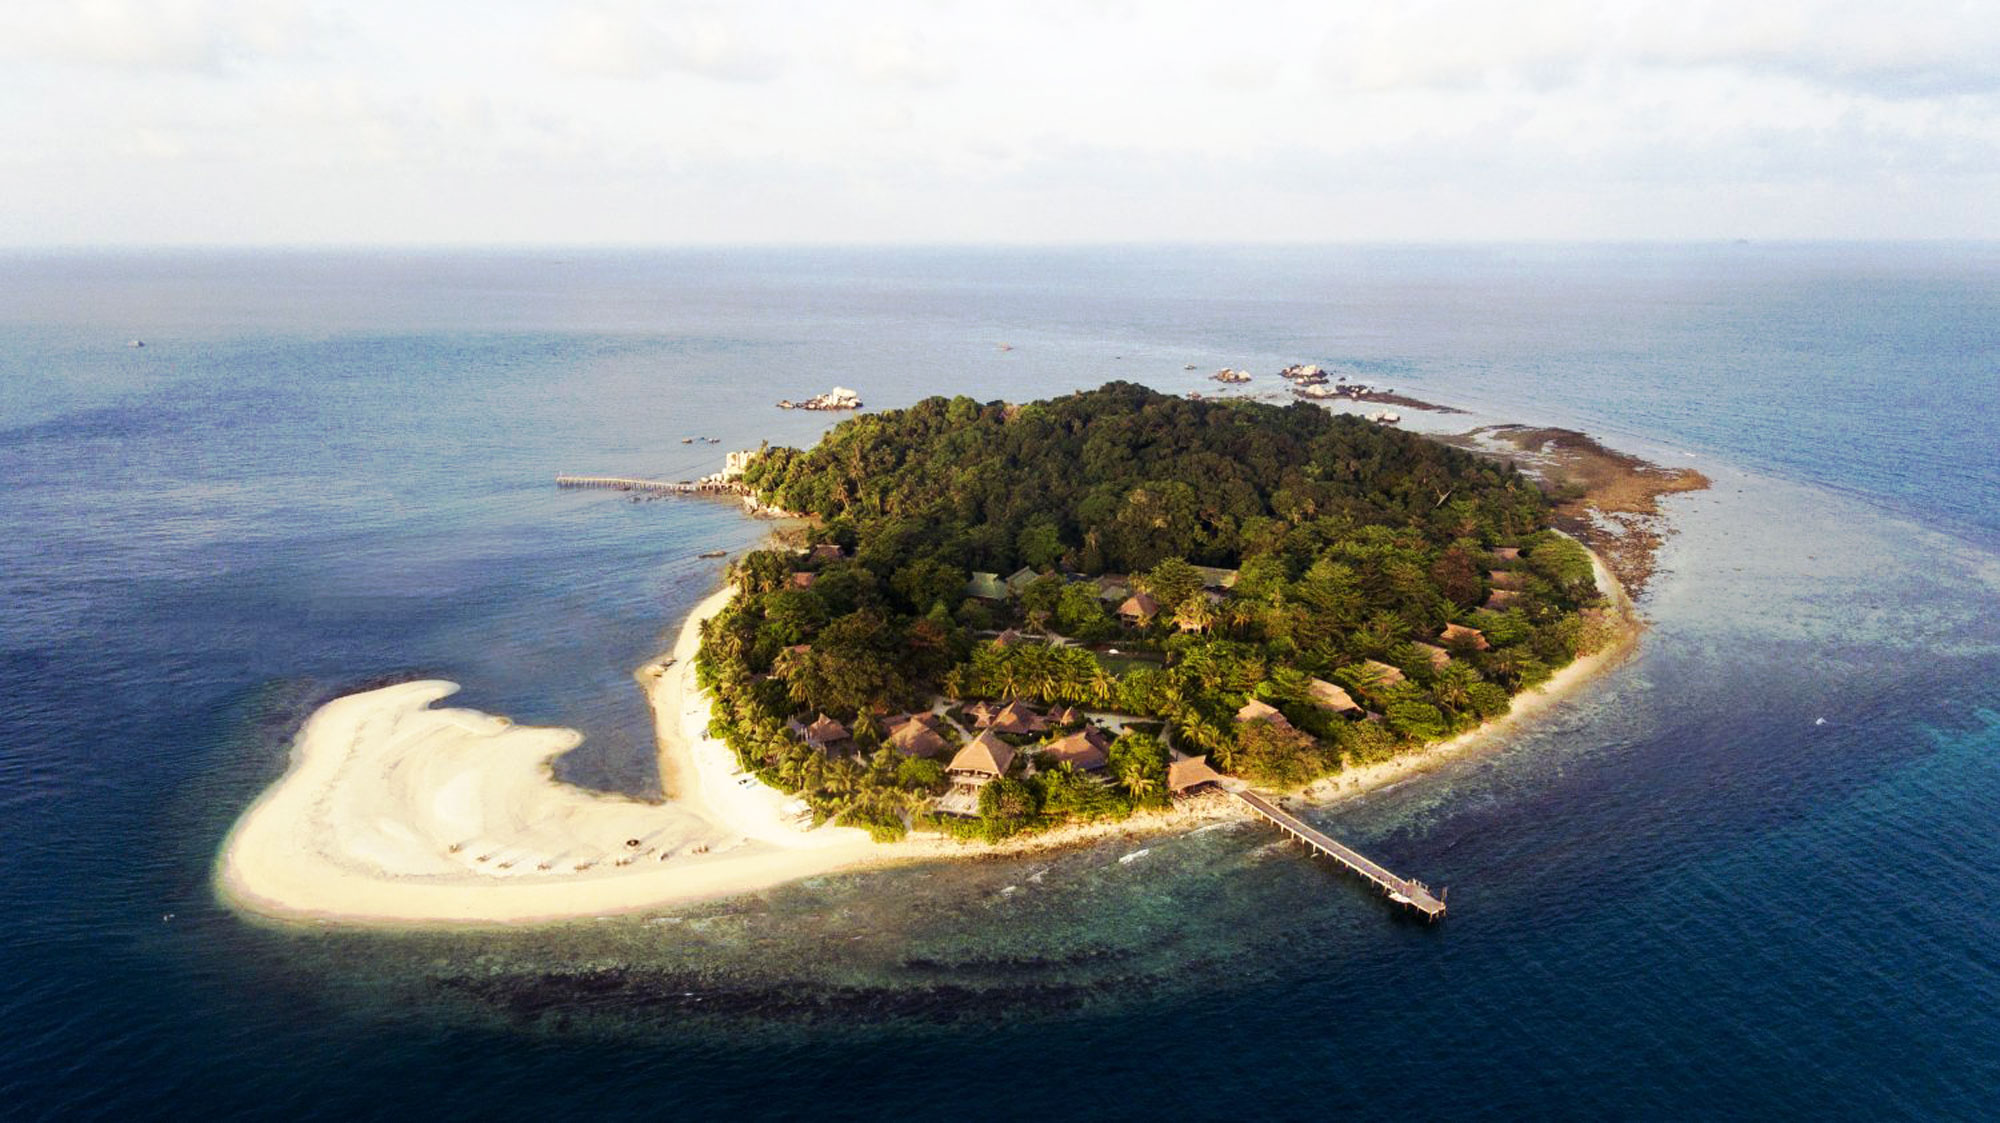 Aerial view of an island